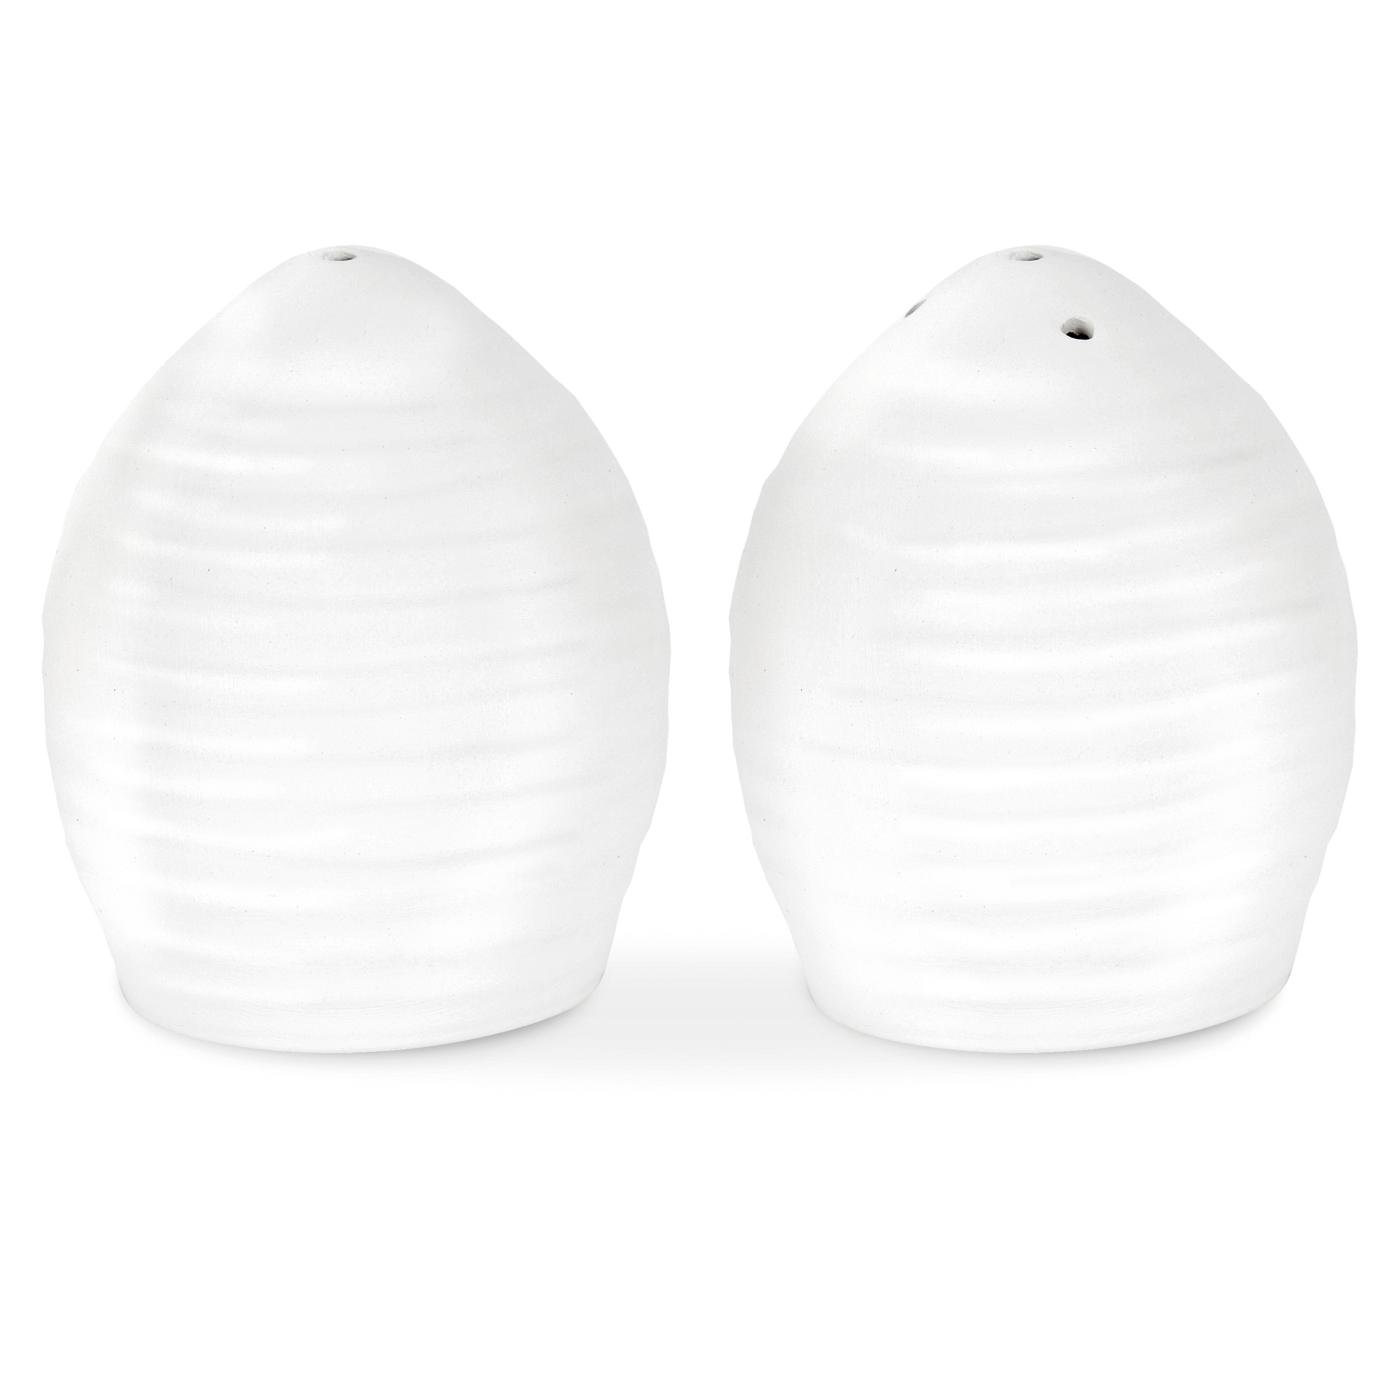 Portmeirion Sophie Conran White Salt and Pepper Set Portmeirion USA 459908